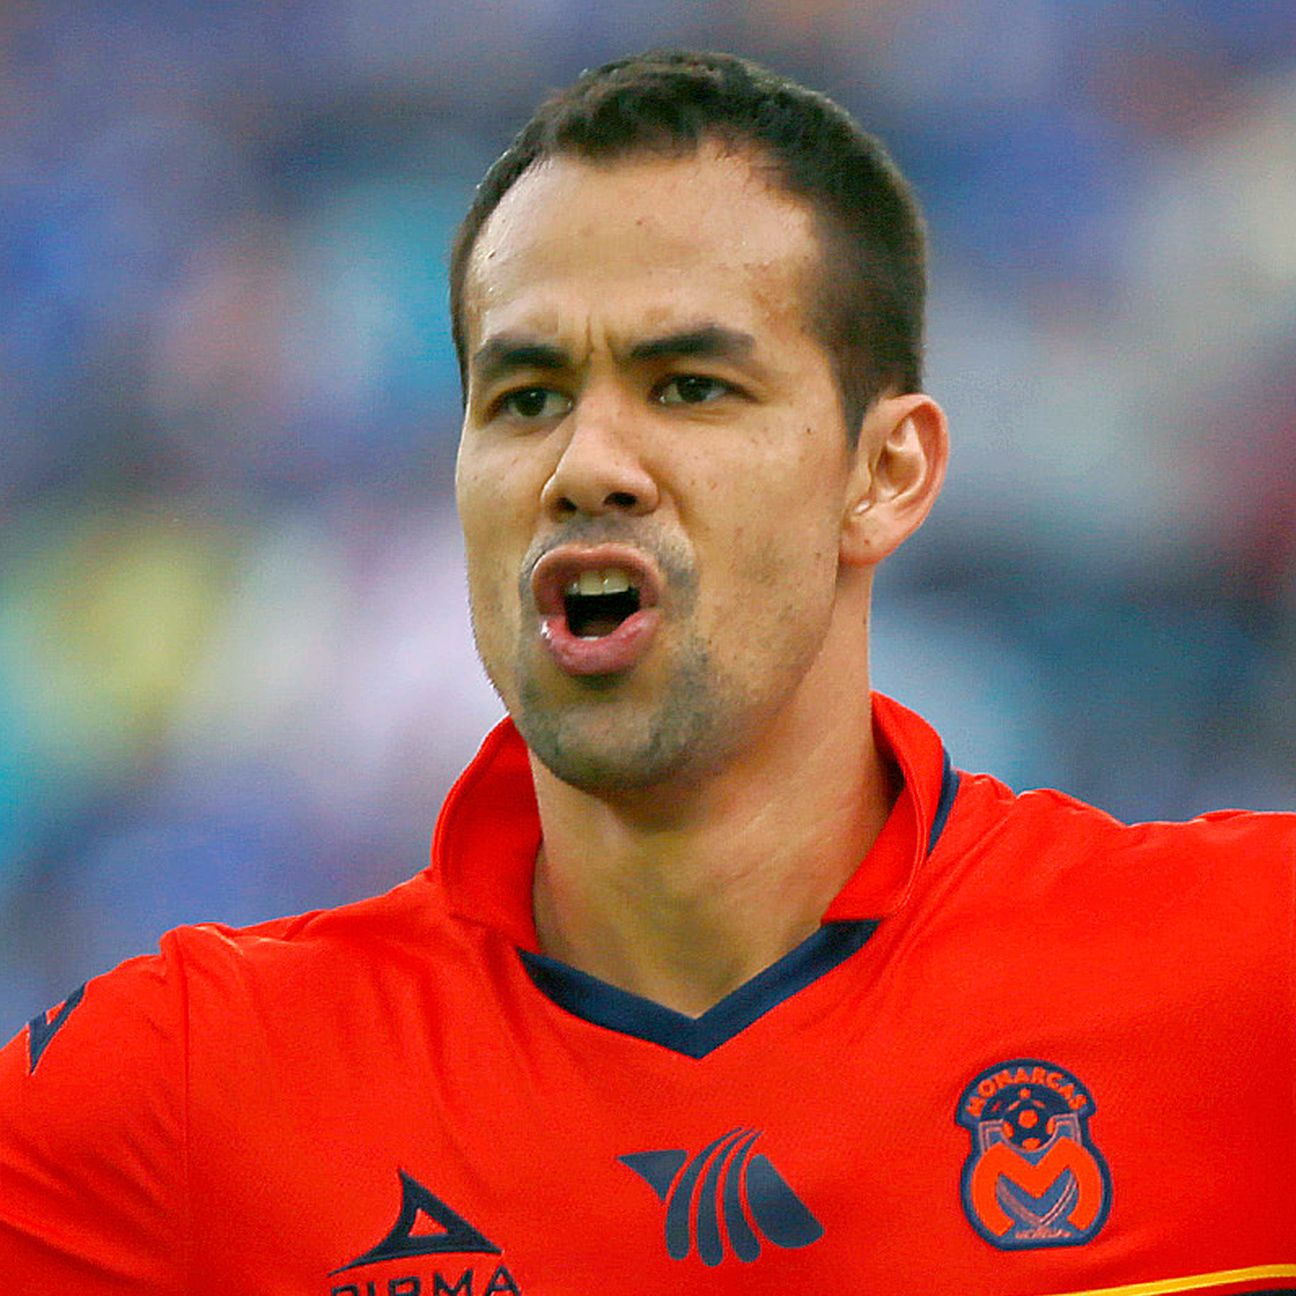 Pablo Velazquez led the way for Morelia in their surprising 3-0 win at Cruz Azul.